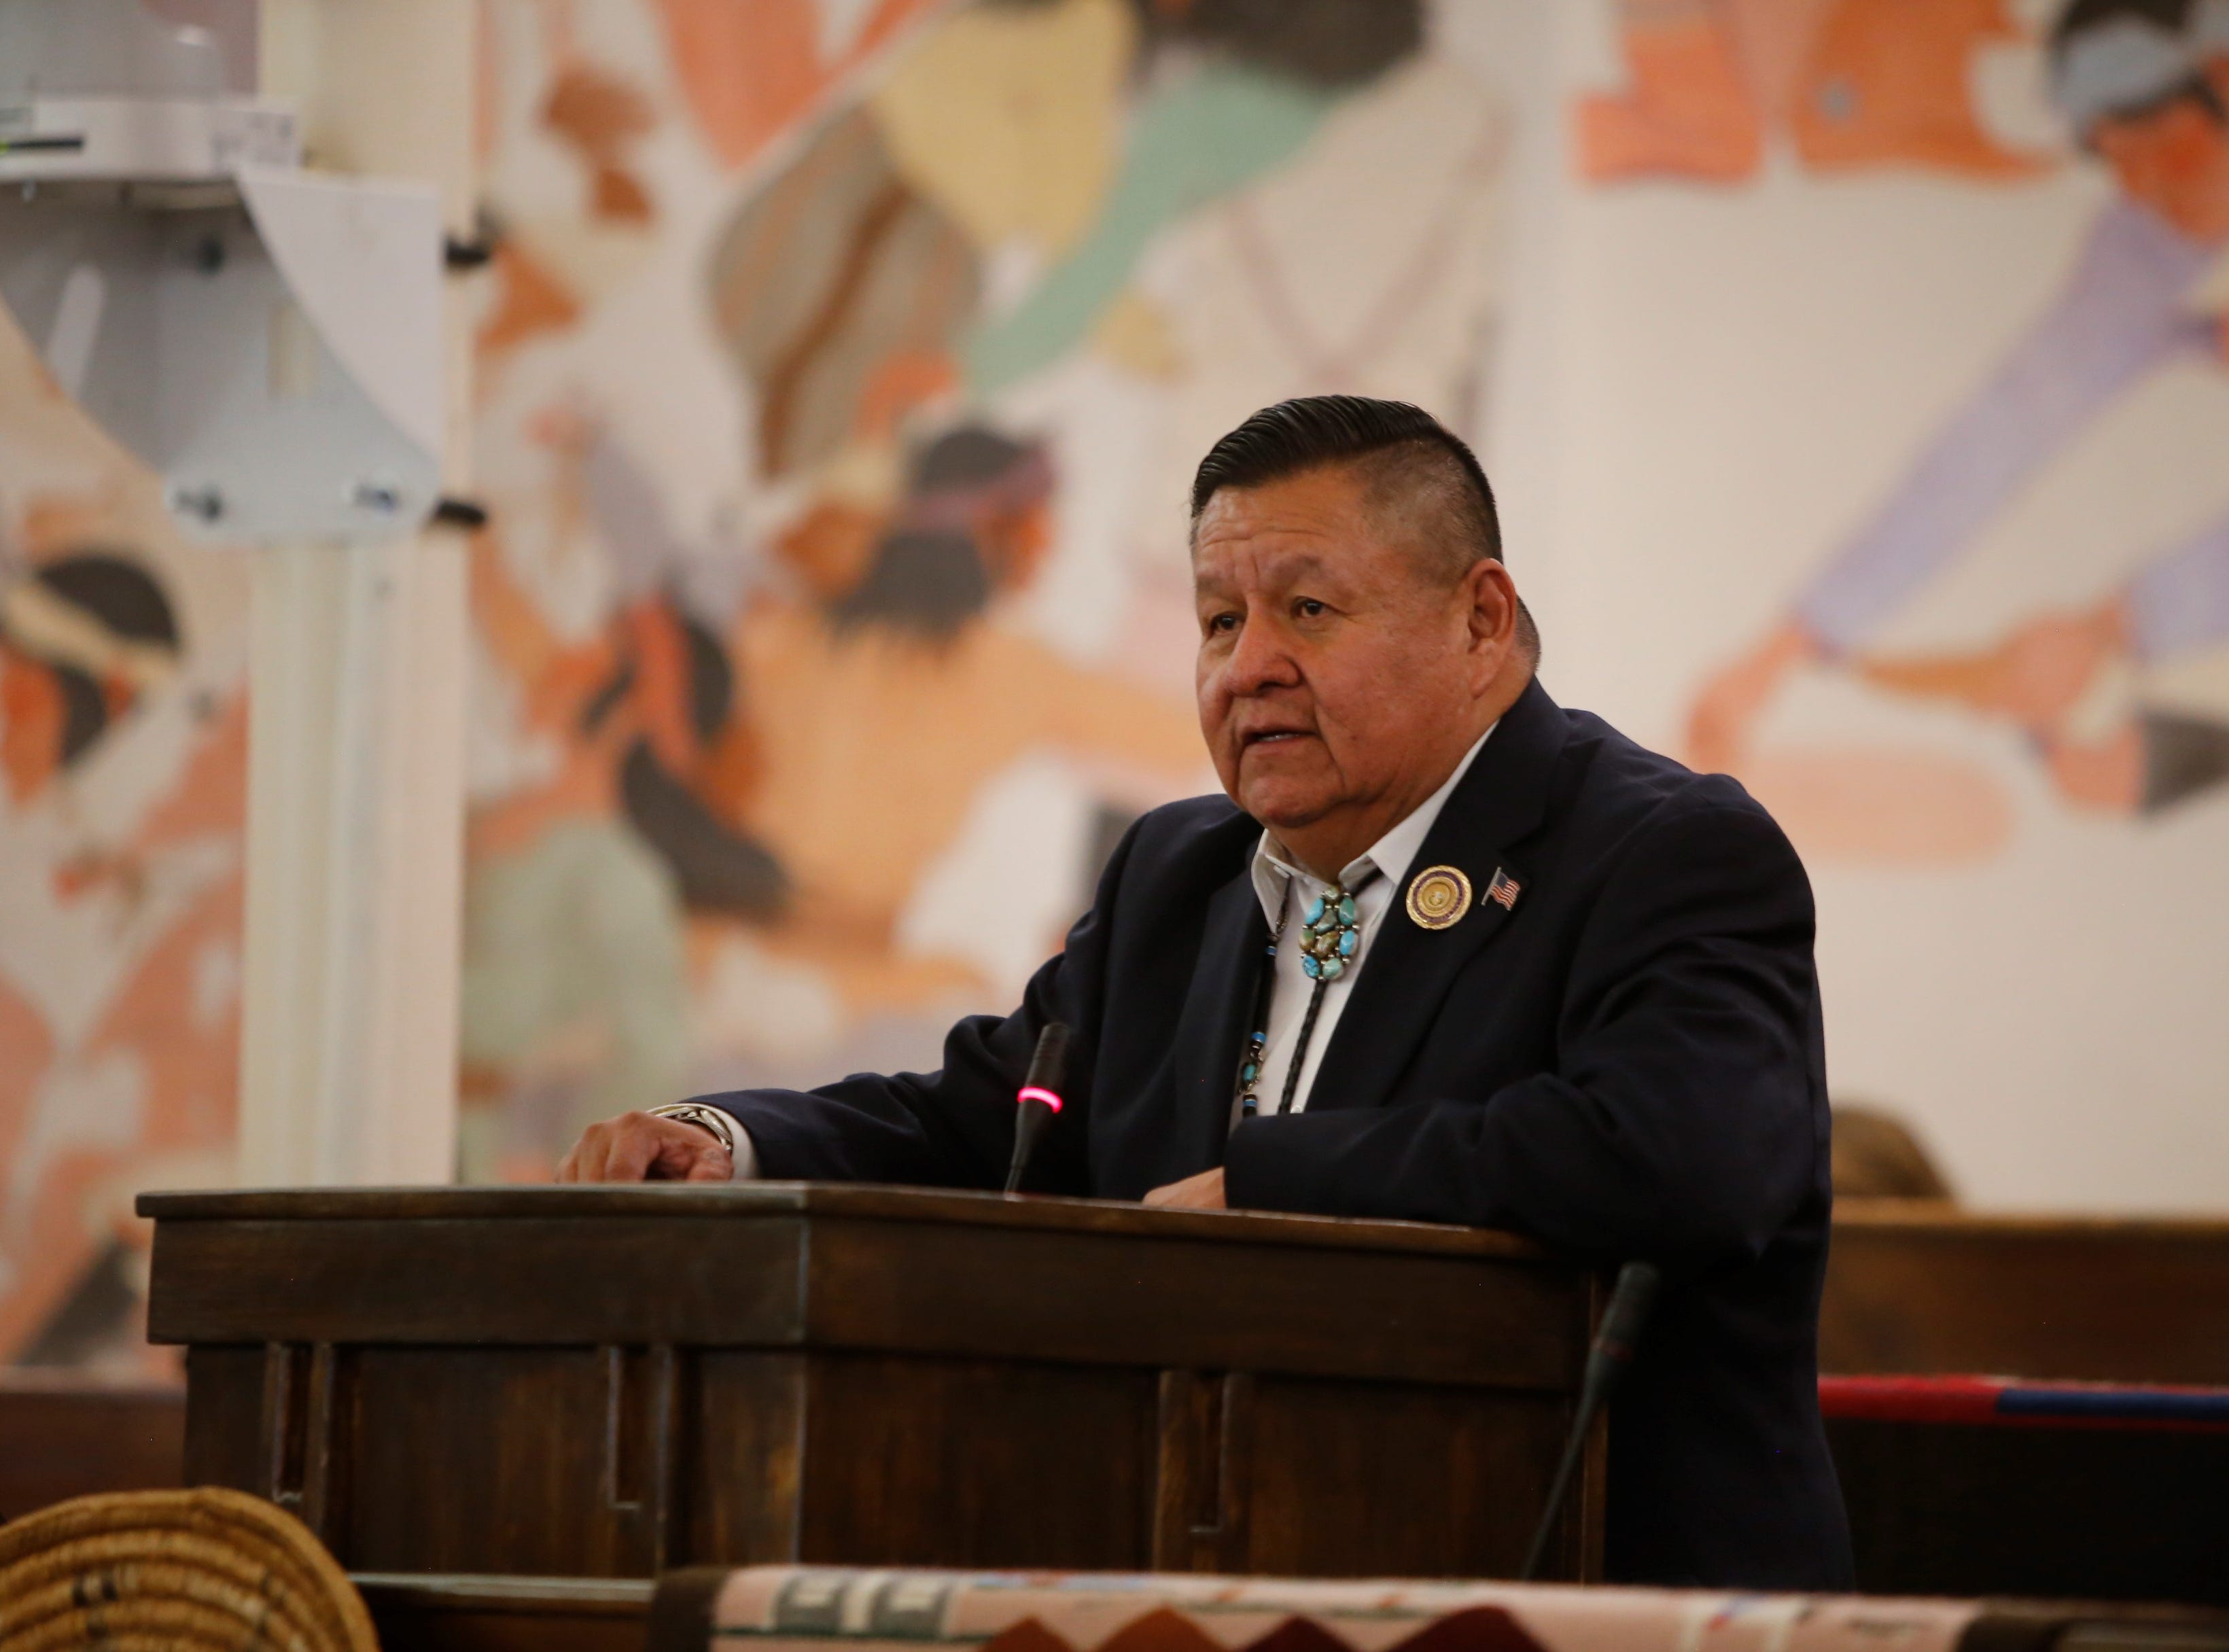 Delegate Jamie Henio presents his platform for service as speaker of the Navajo Nation Council at the winter session on Monday in Window Rock, Ariz.